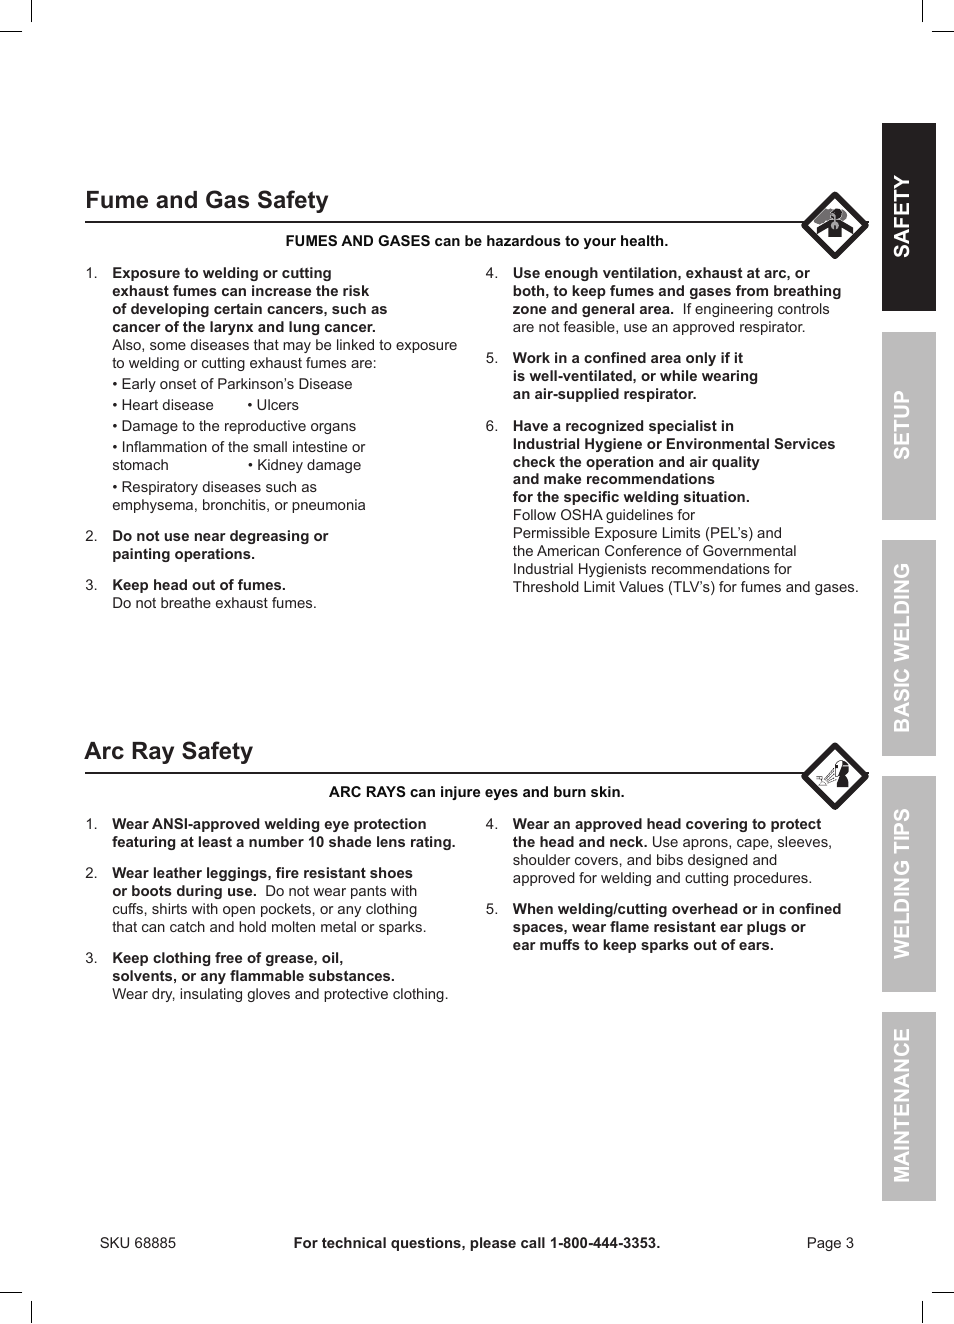 Fume and gas safety, Arc ray safety | Chicago Electric Wire Feed